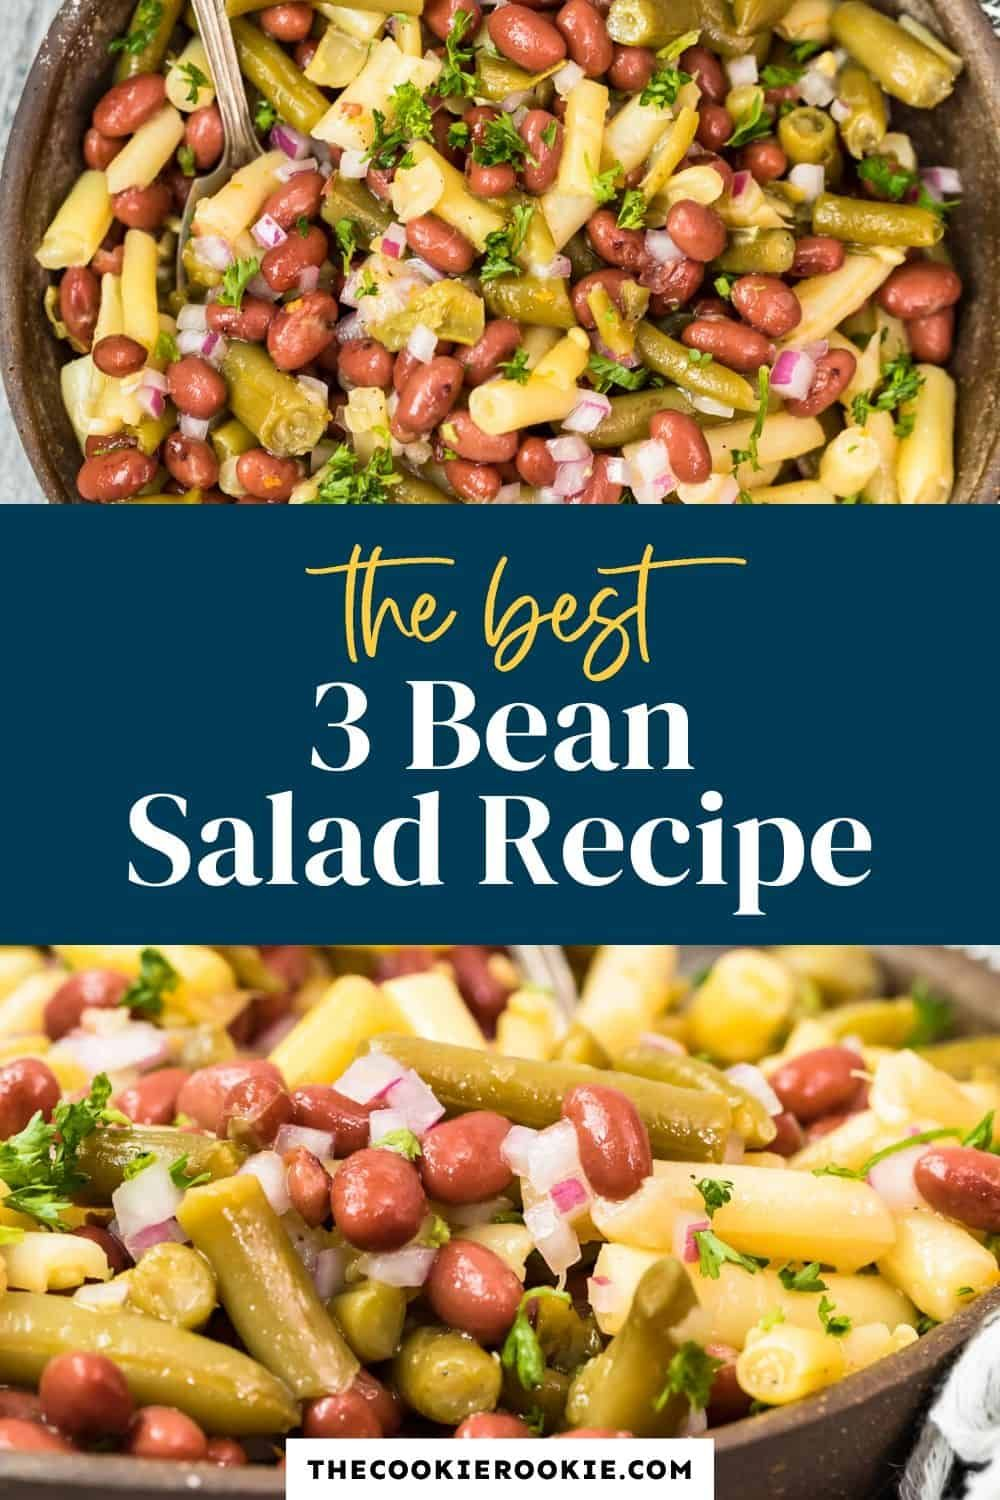 This Cold 3 Bean Salad Is So Easy To Make And Is Dressed In A Zingy And Sweet Vinaigrette Make In 2020 Bean Salad Recipes Bean Salad Thanksgiving Recipes Side Dishes